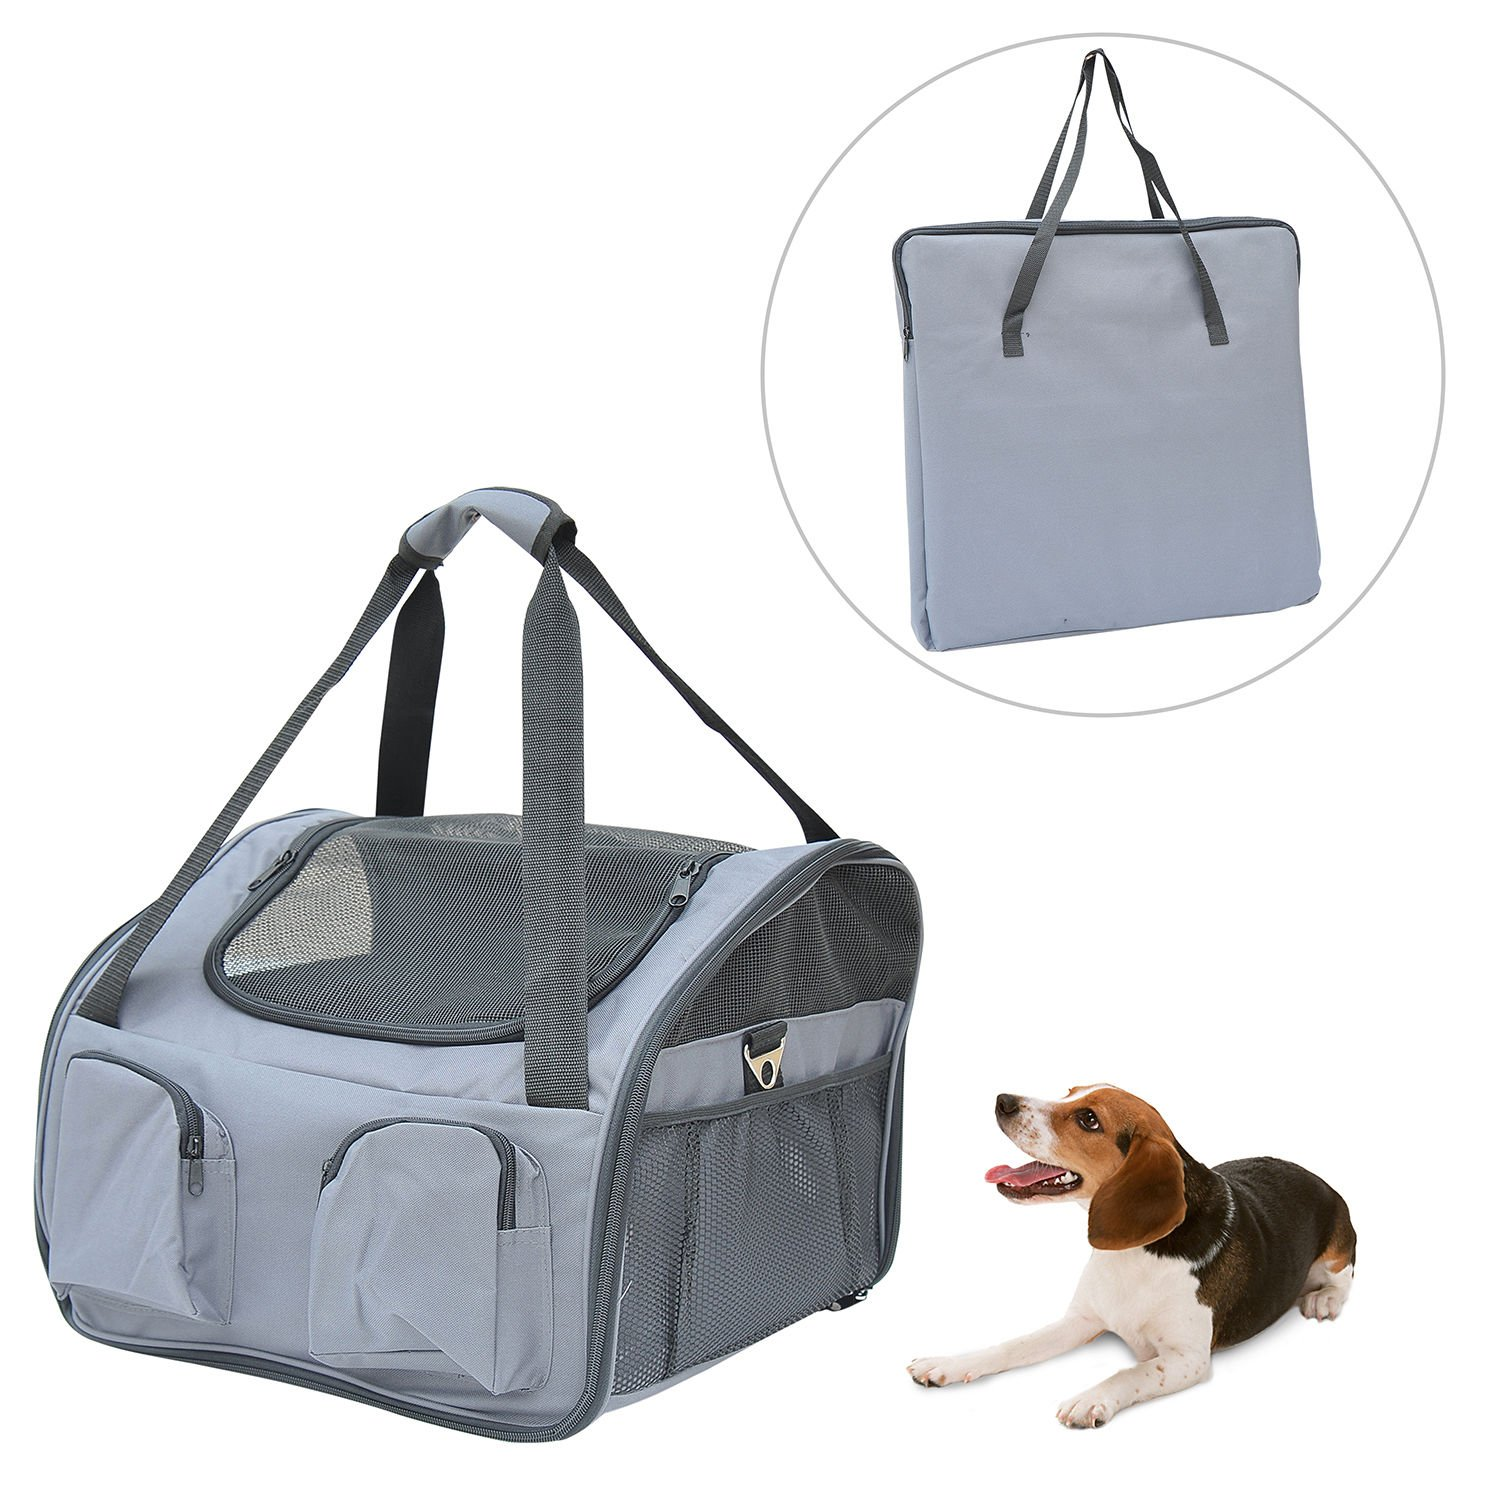 New Pawhut Deluxe Pet Dog Cat Car Bag Travel Soft Carrier Lookout Seat - Gray